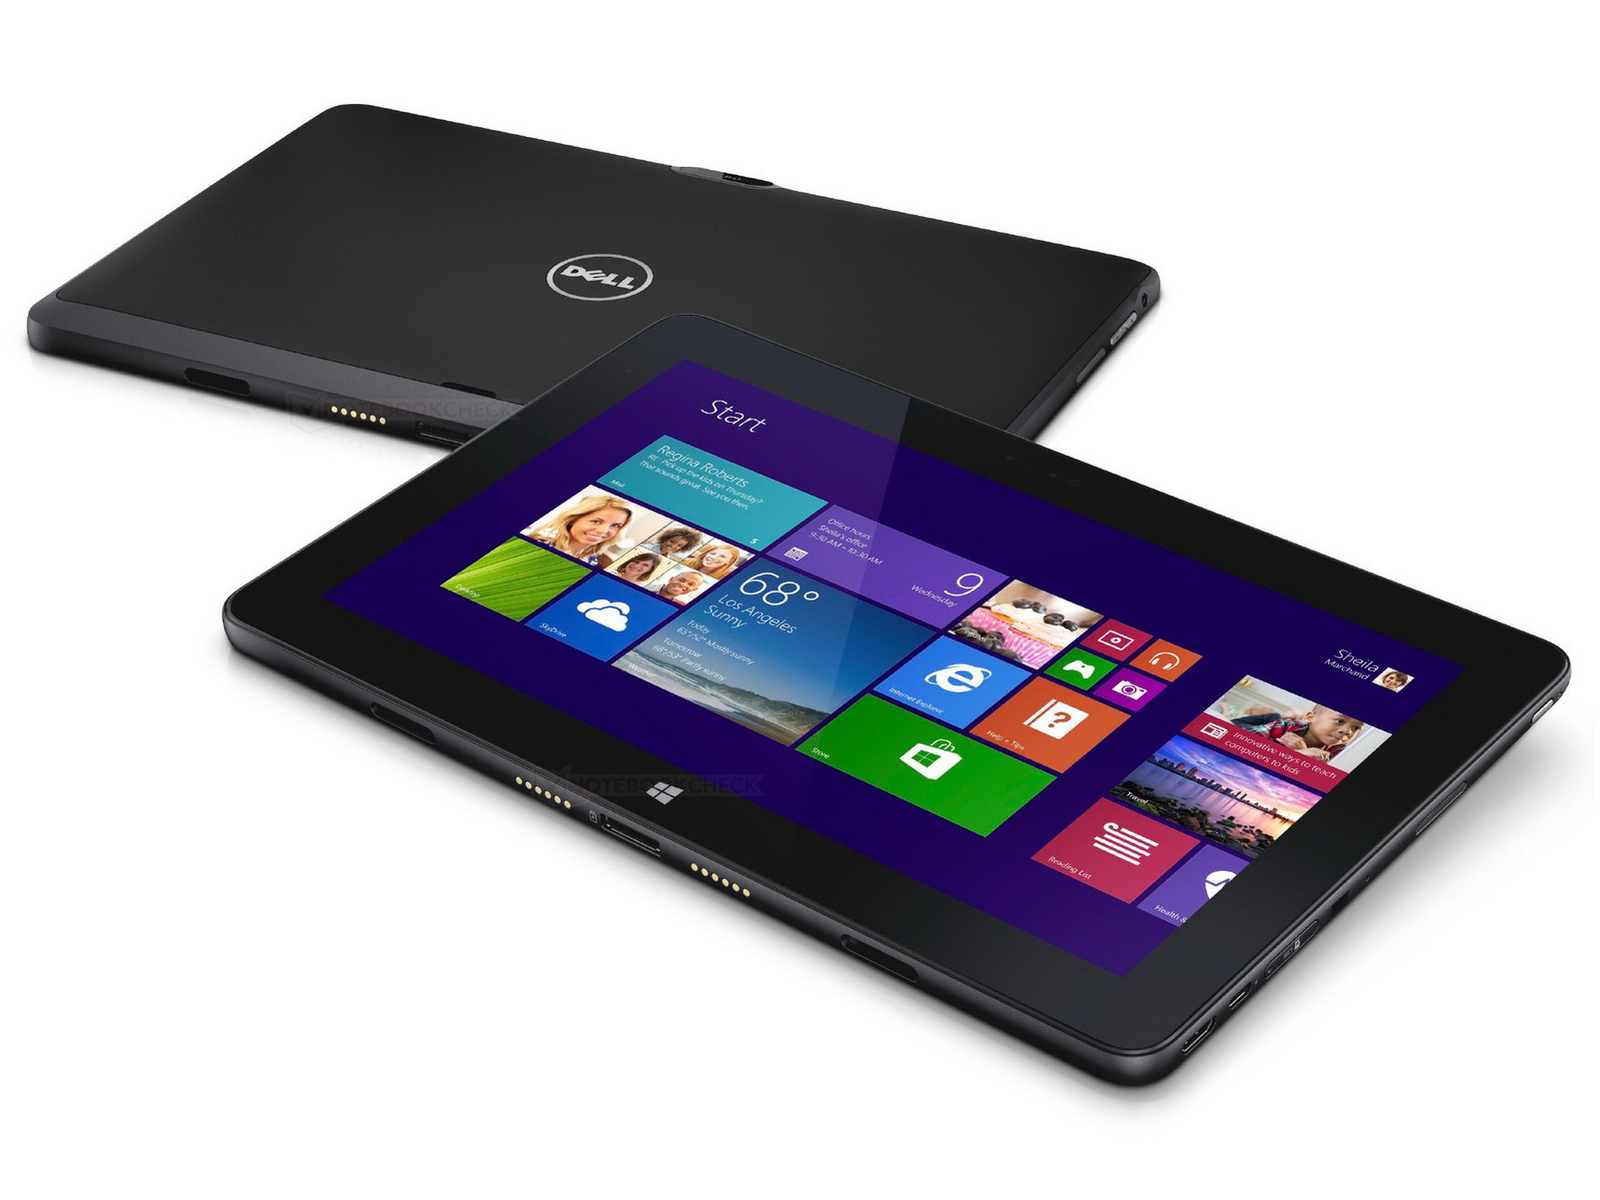 Test-Update Dell Venue 11 Pro 7130 Tablet